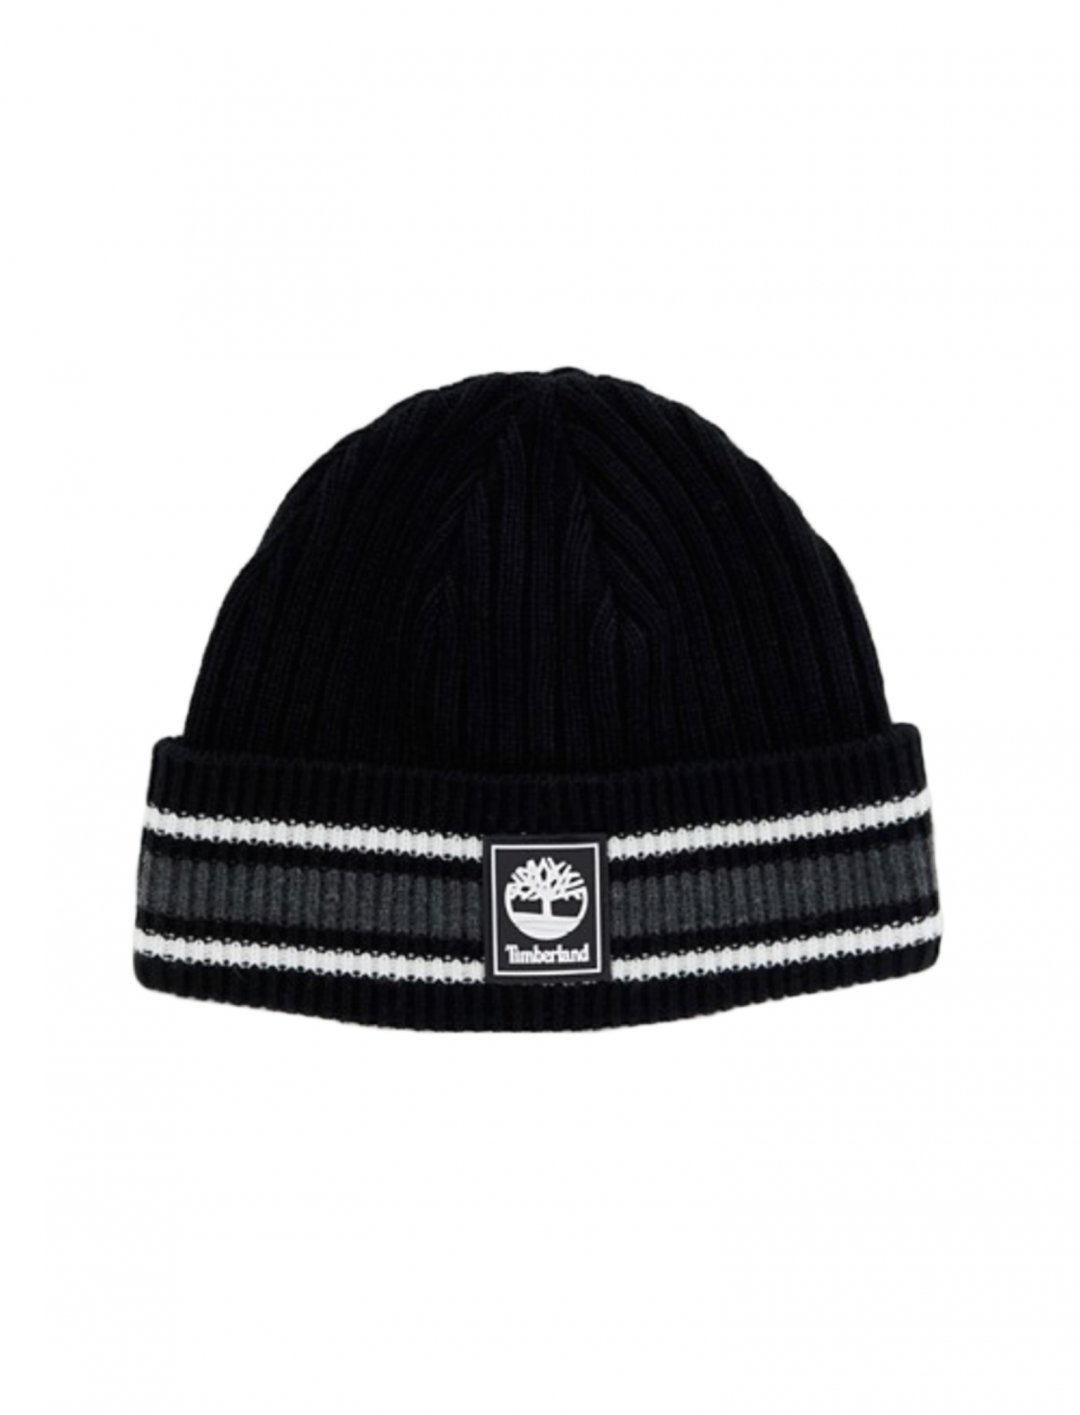 8acc927a1 Beanie, In Black from Timberland